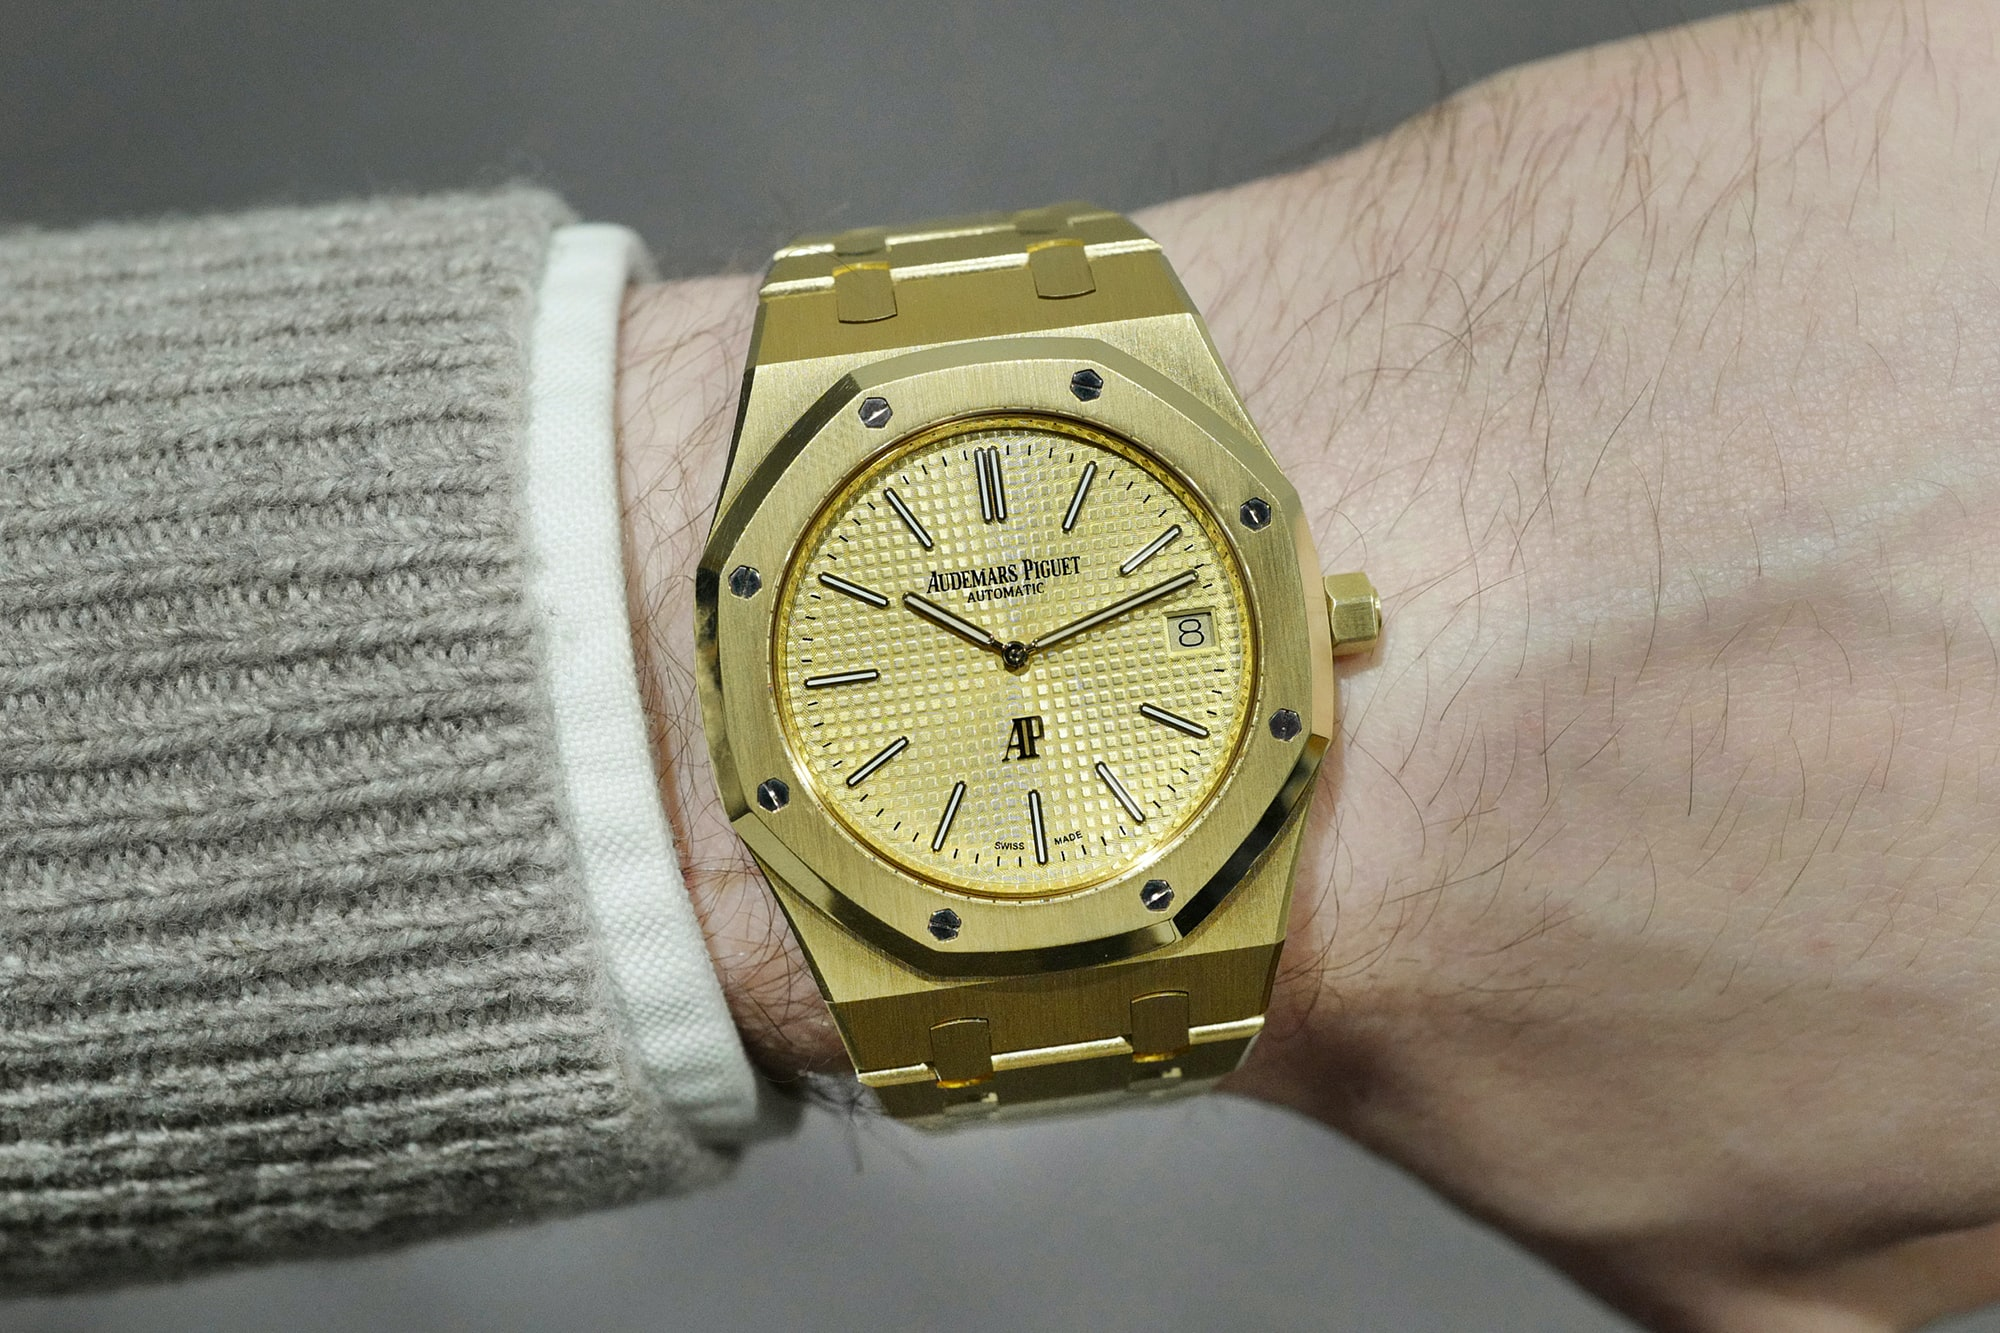 Hands-On: The Audemars Piguet Extra-Thin 'Jumbo' Royal Oak Reference 15202 In Yellow Gold Hands-On: The Audemars Piguet Extra-Thin 'Jumbo' Royal Oak Reference 15202 In Yellow Gold jumbo lede2